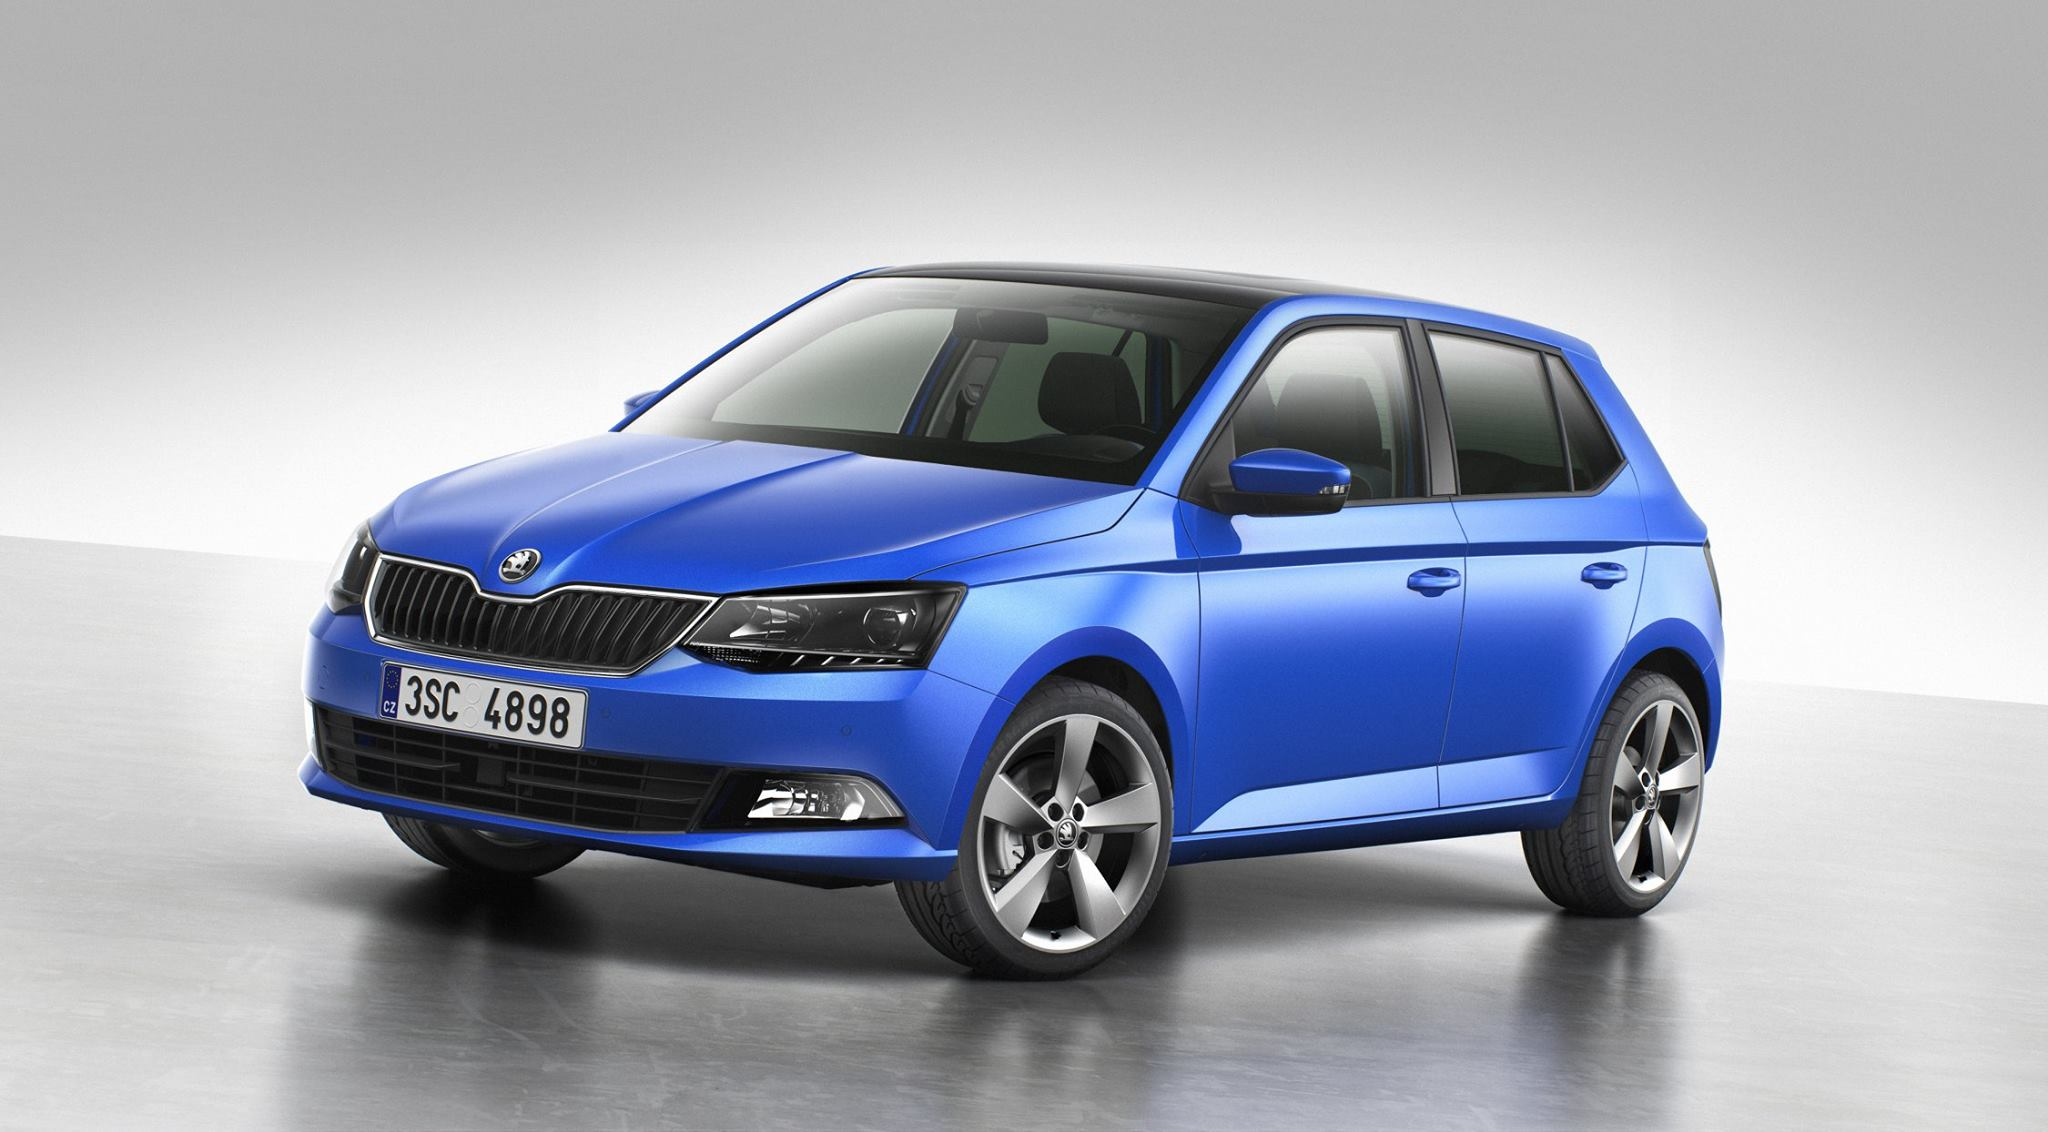 2015 Skoda Fabia Production To Commence By August End